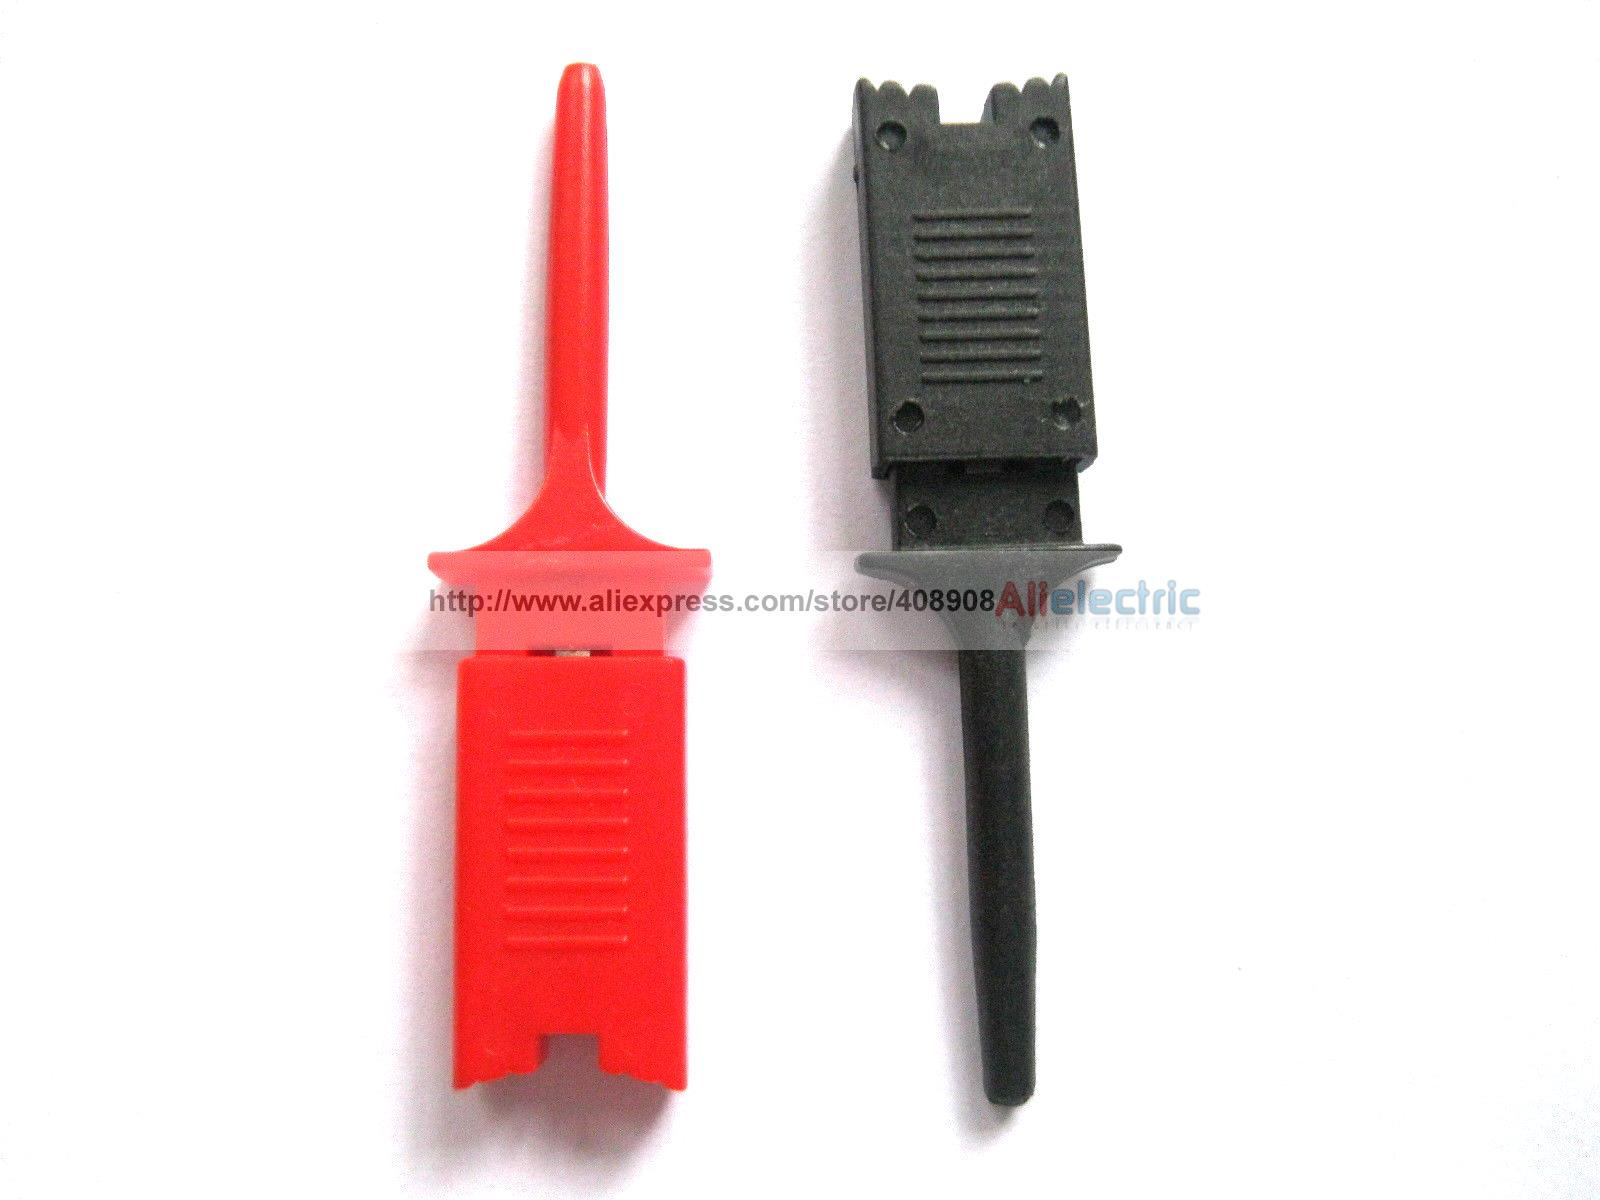 100 Pcs Flat Small Test Clip for Multimeter Red Black цены